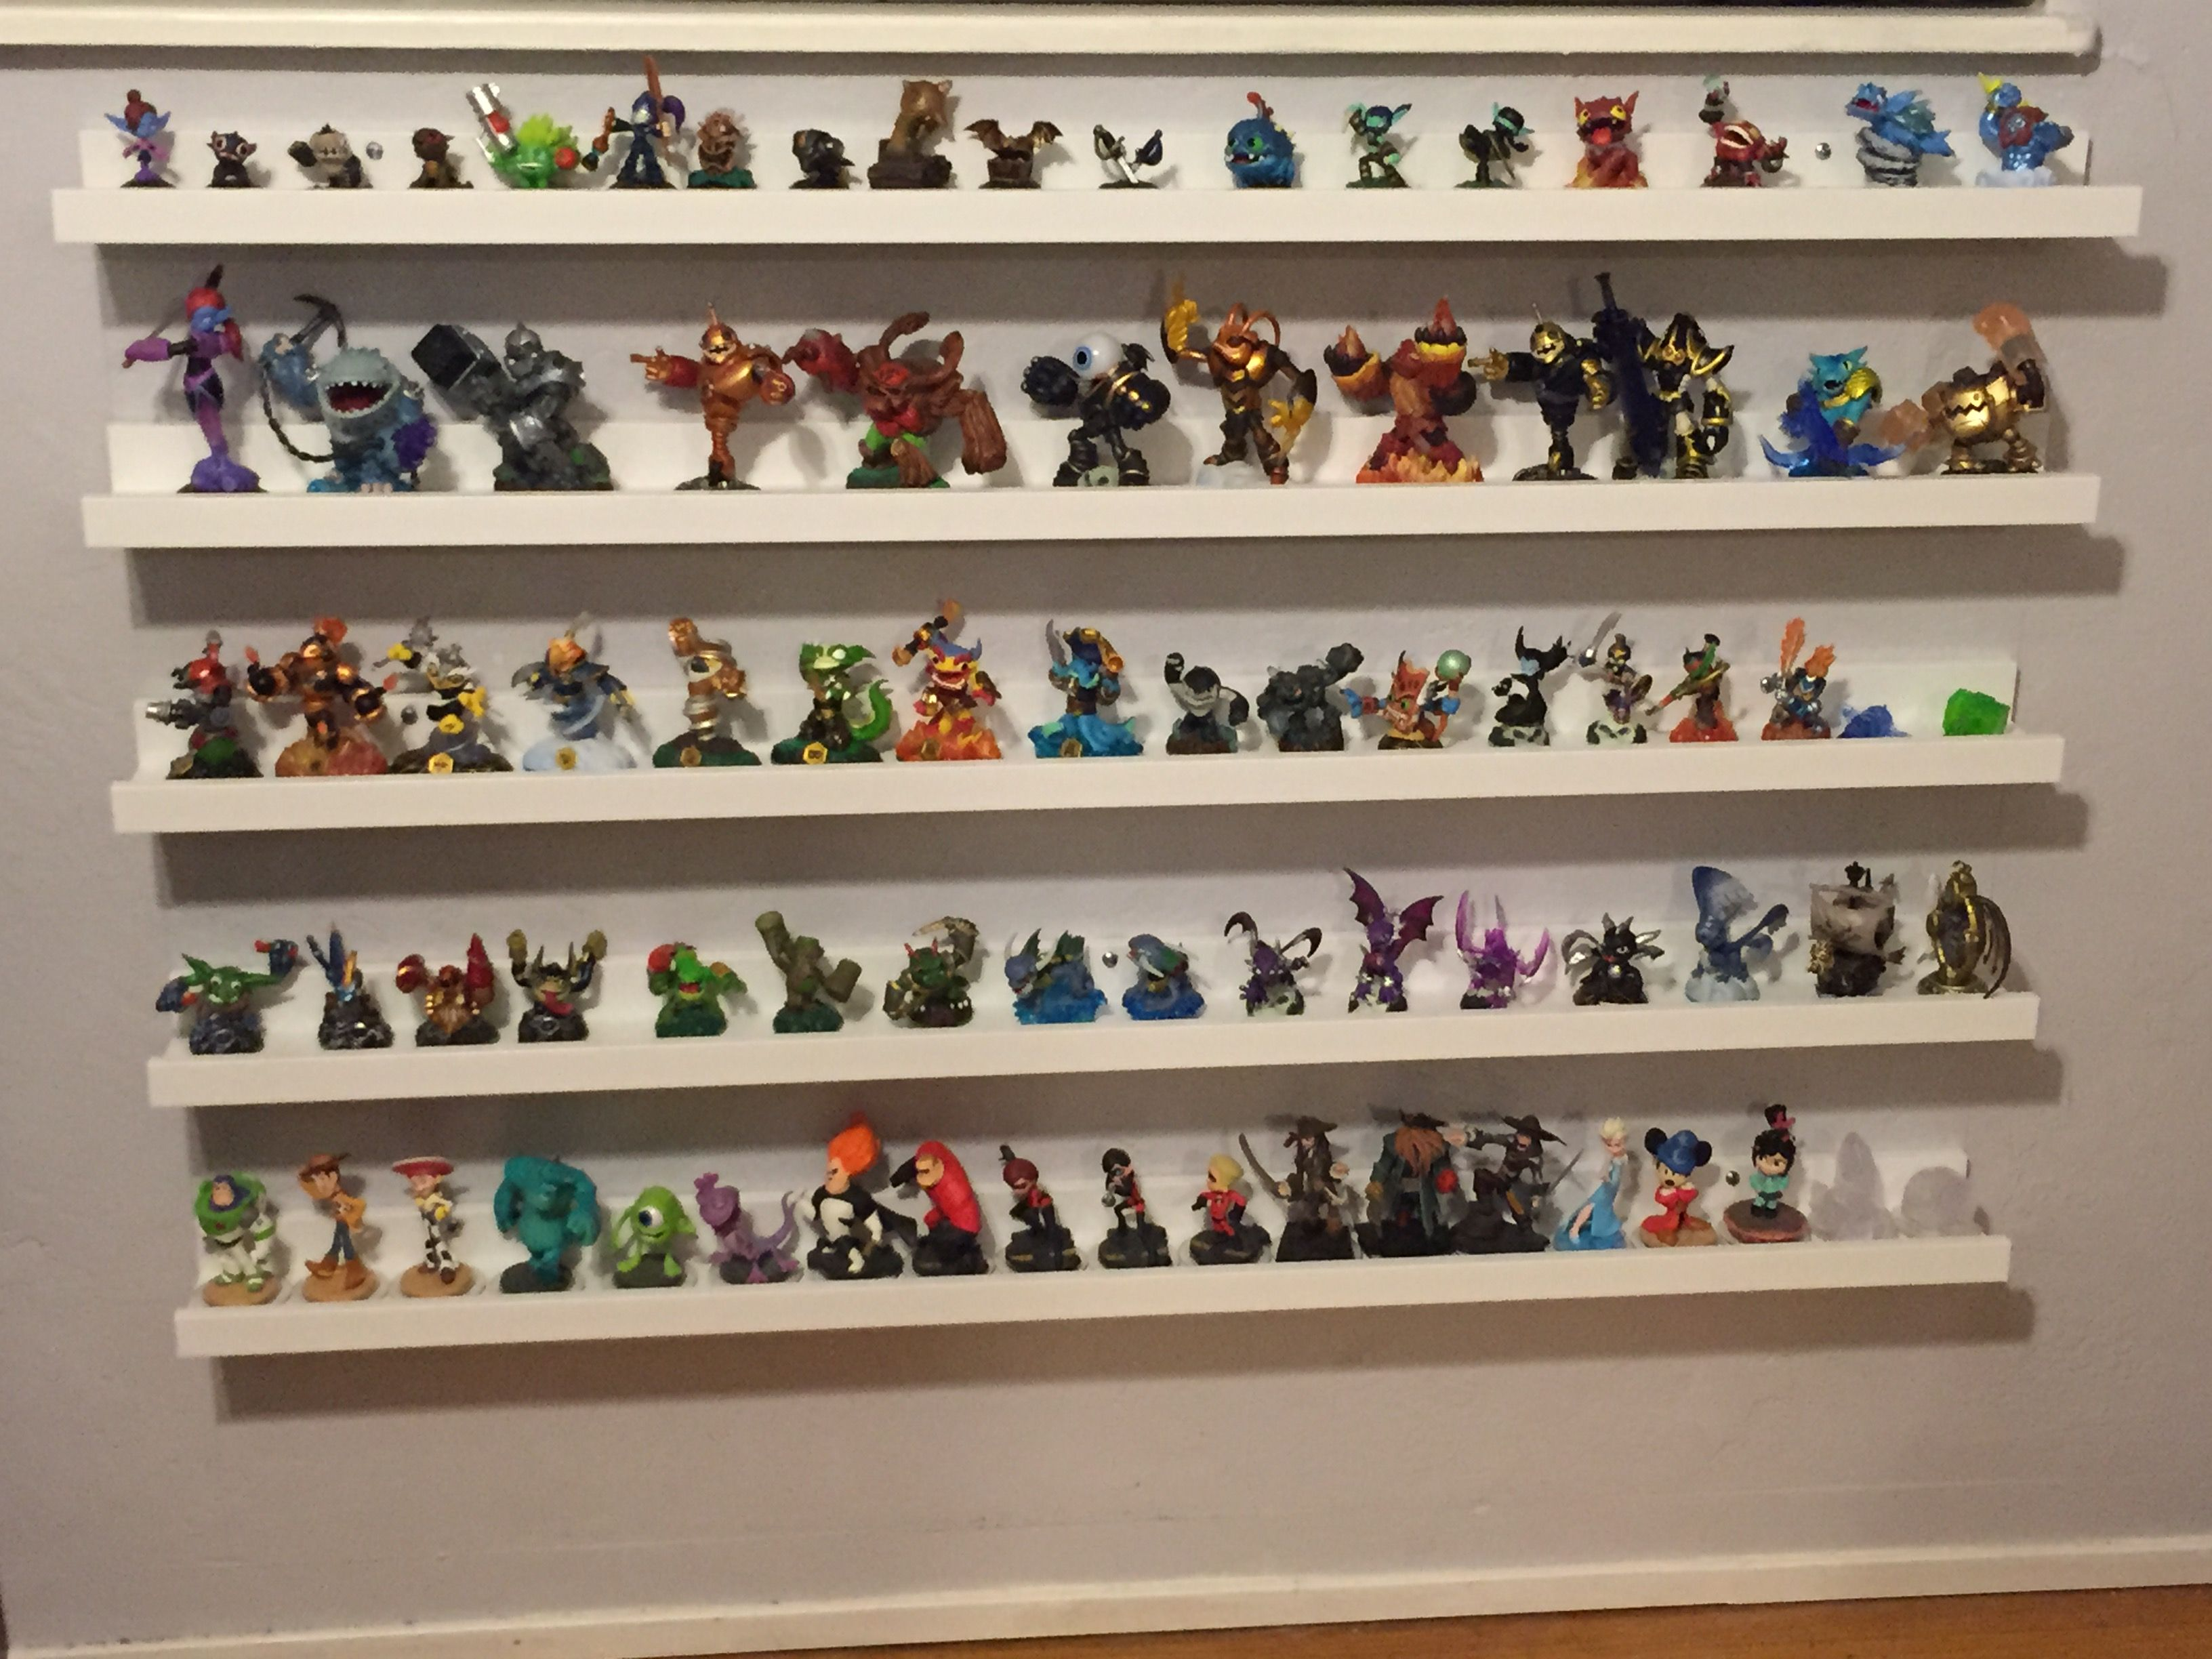 ikea picture ledges to hold skylanders and disney infinity. Black Bedroom Furniture Sets. Home Design Ideas